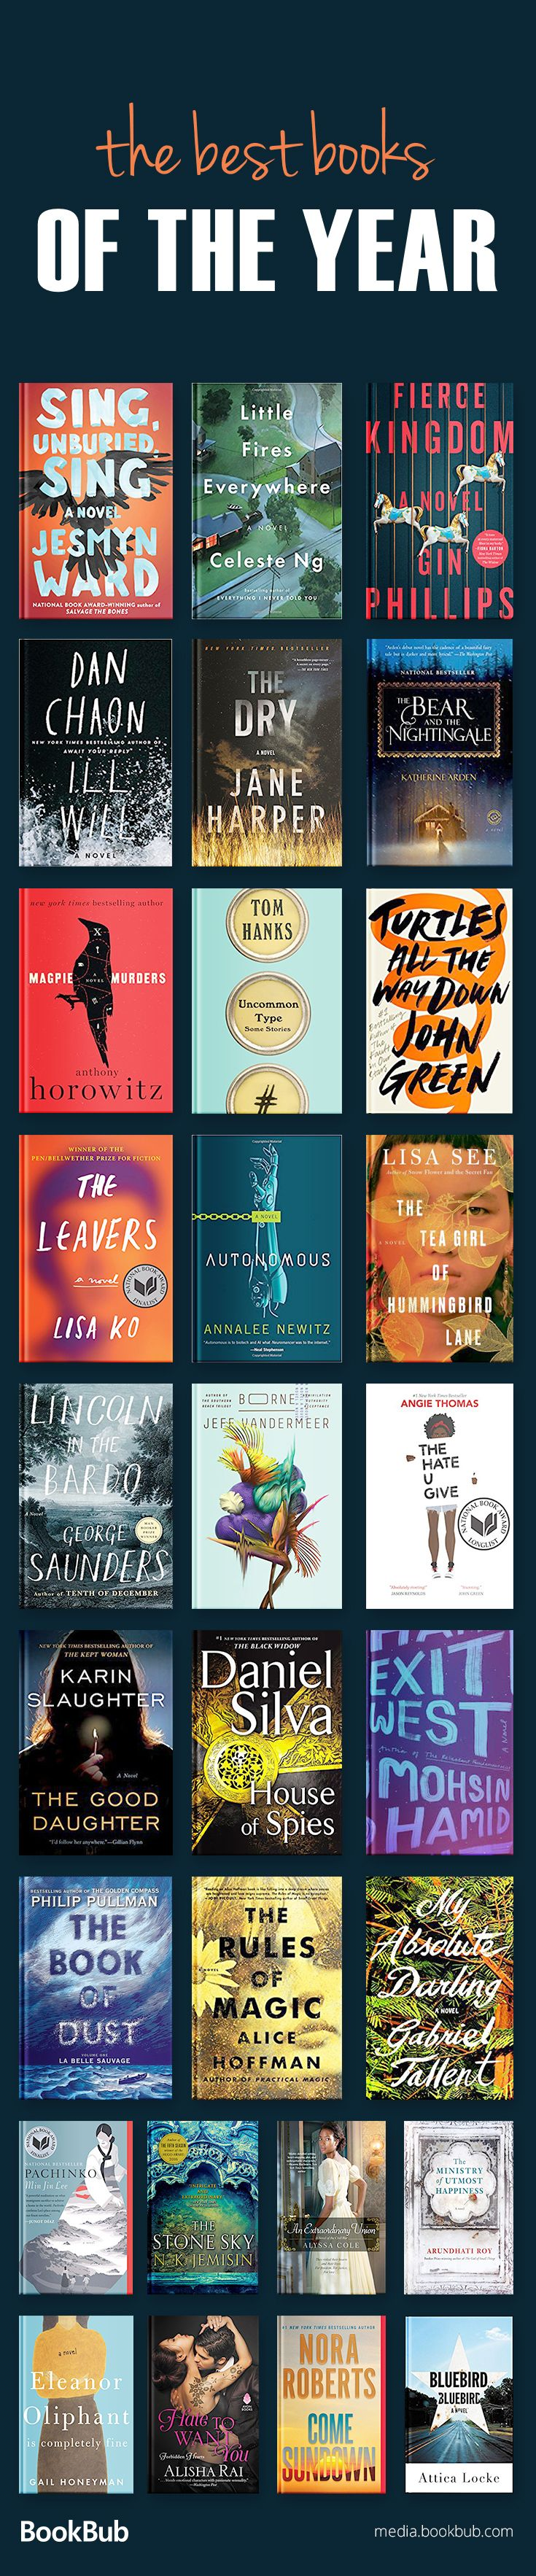 The best books of 2017, including books to read in 2018, books for 20 somethings, and some of the best books of all time!